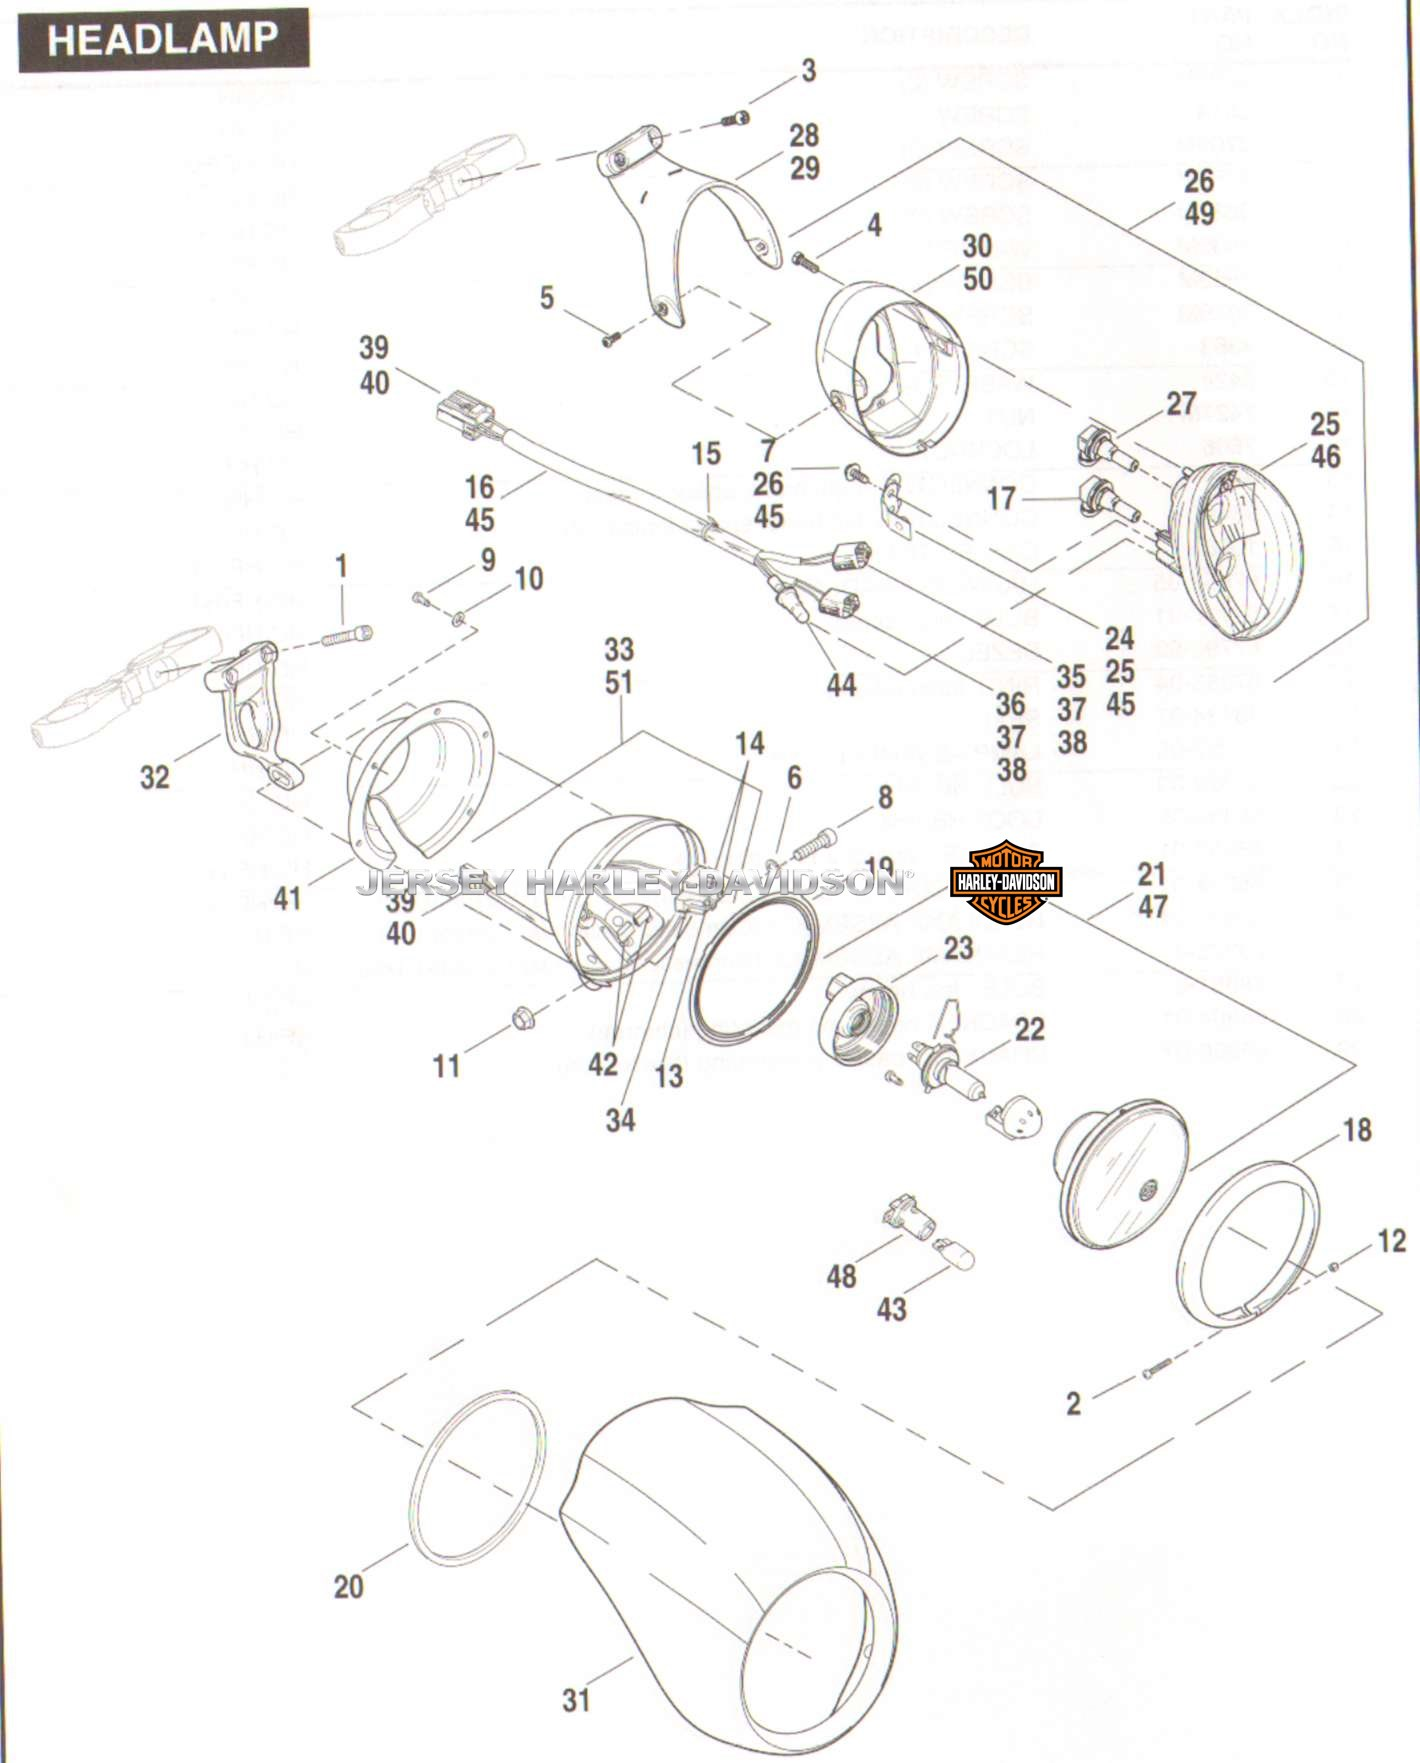 2003 harley softail wiring diagram html